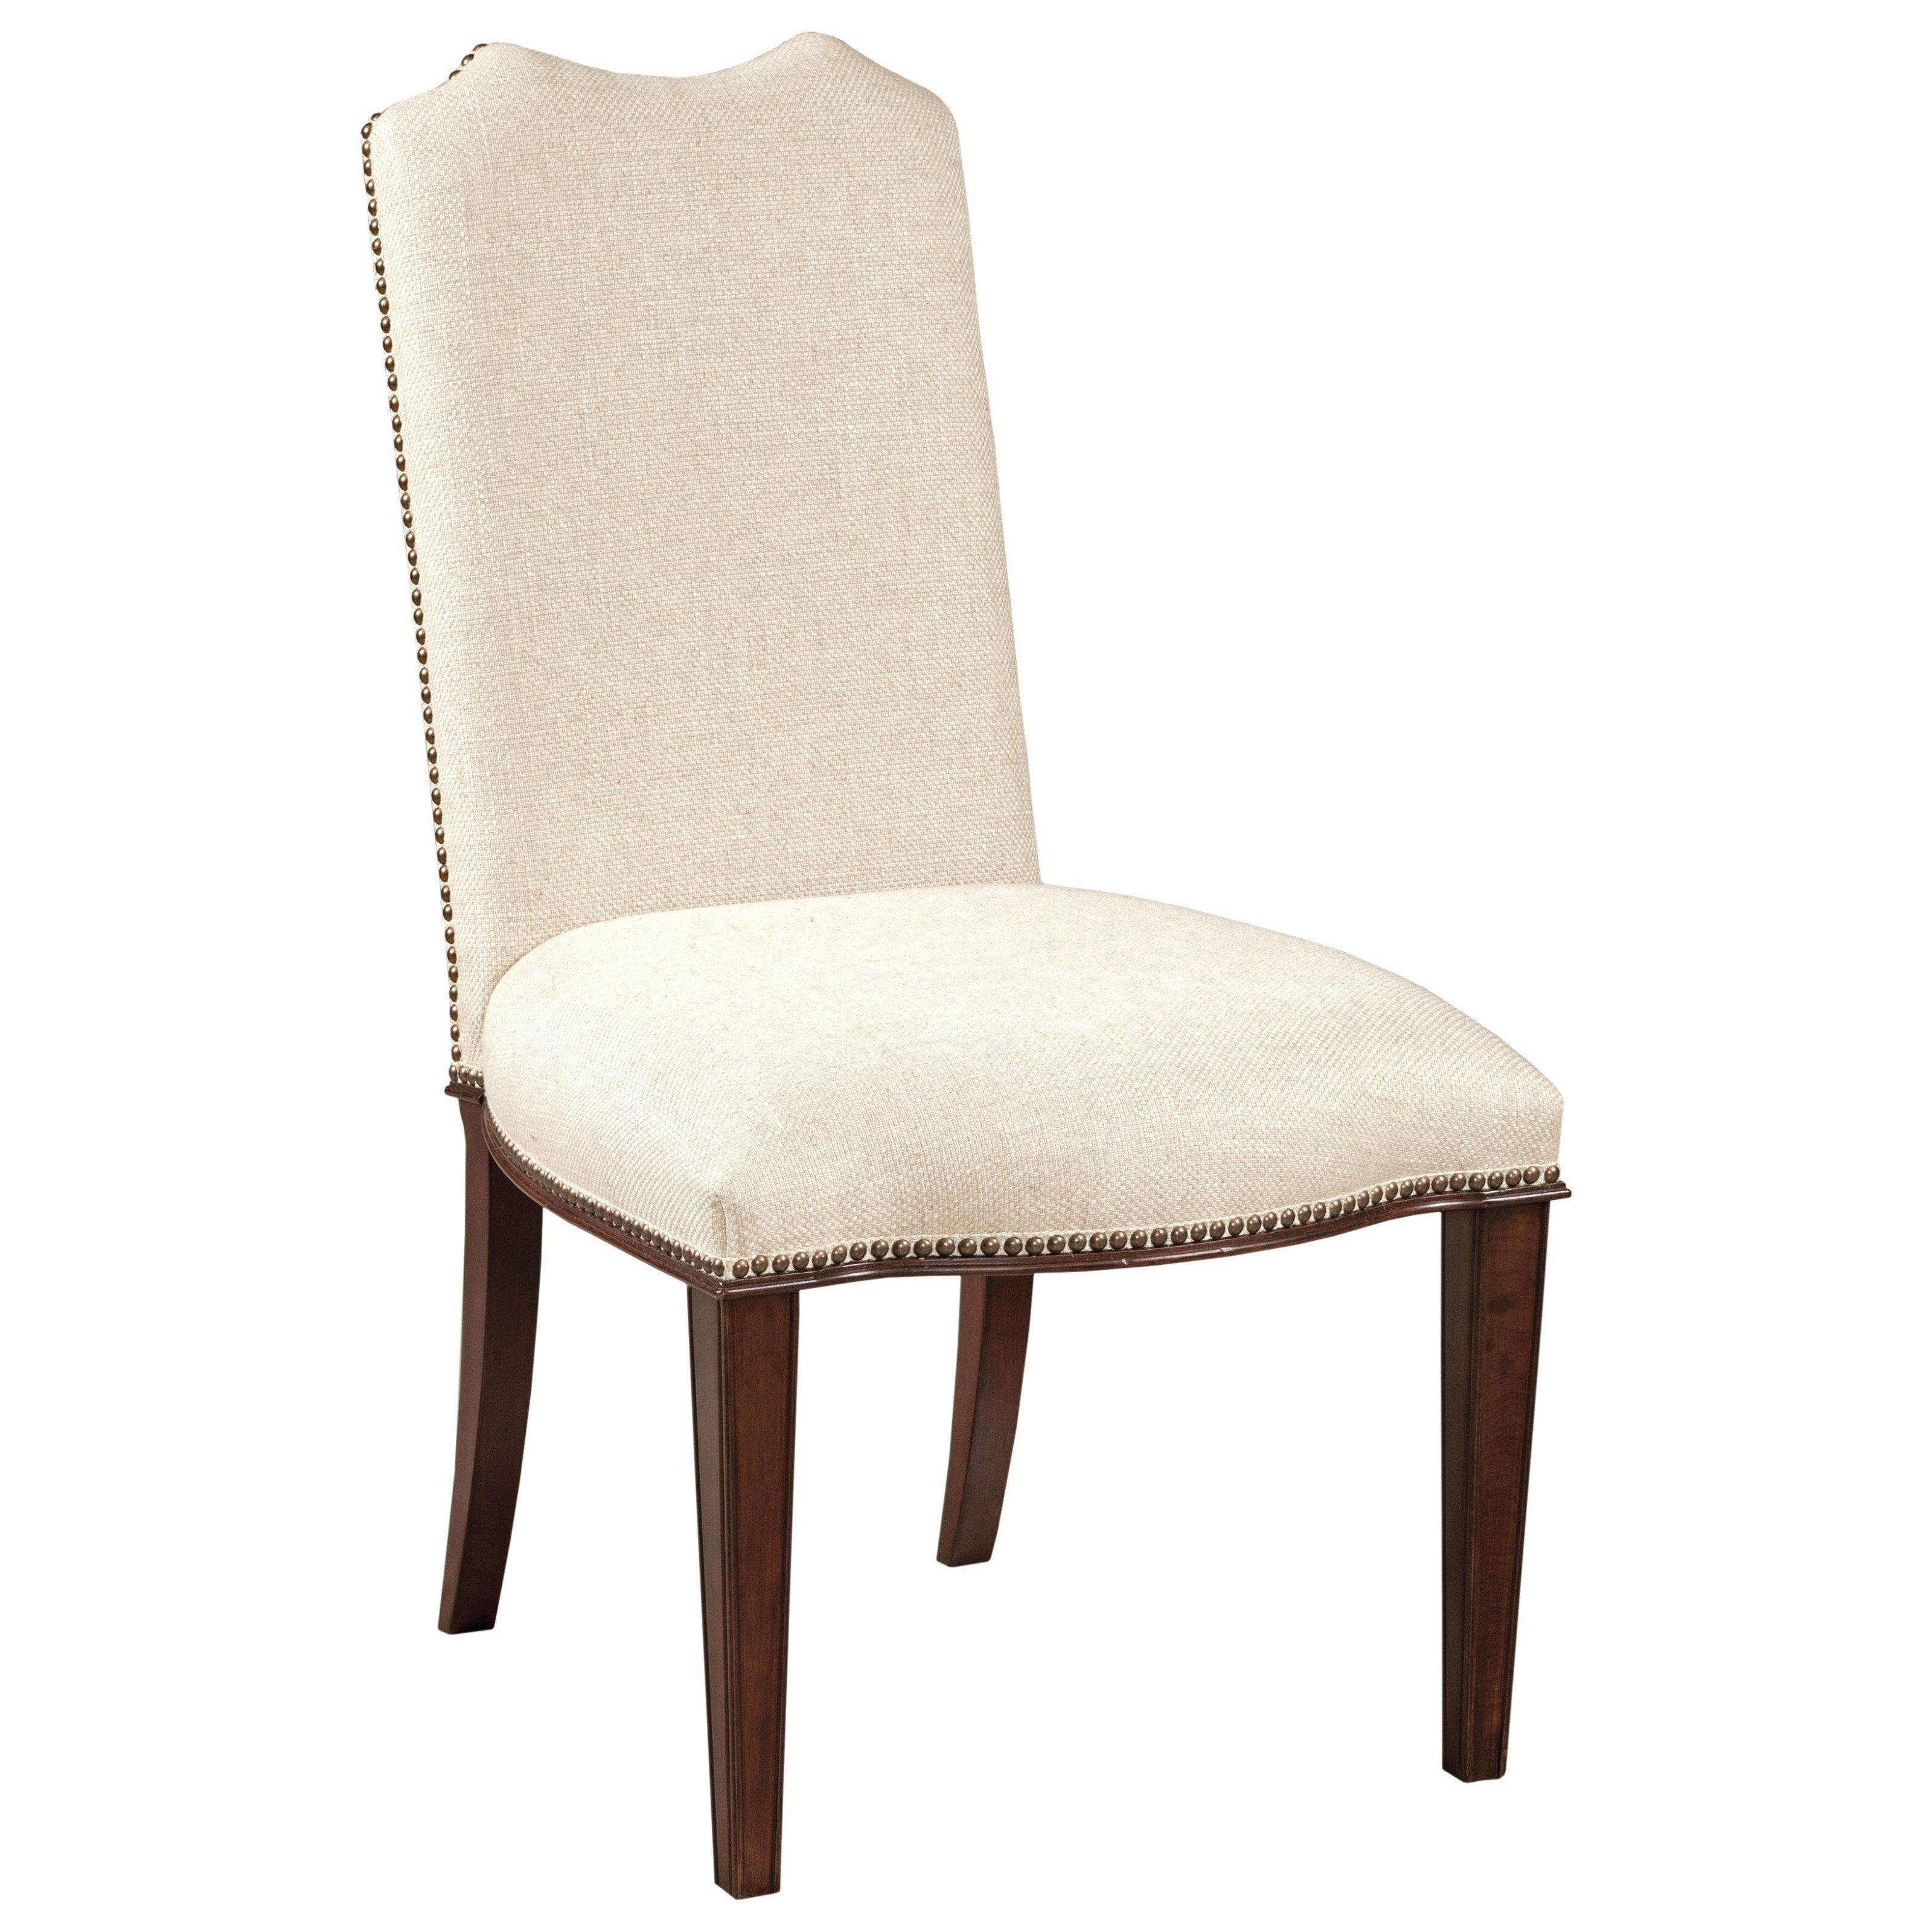 Kincaid Furniture Hadleigh Upholstered Side Chair - Item Number: 607-622